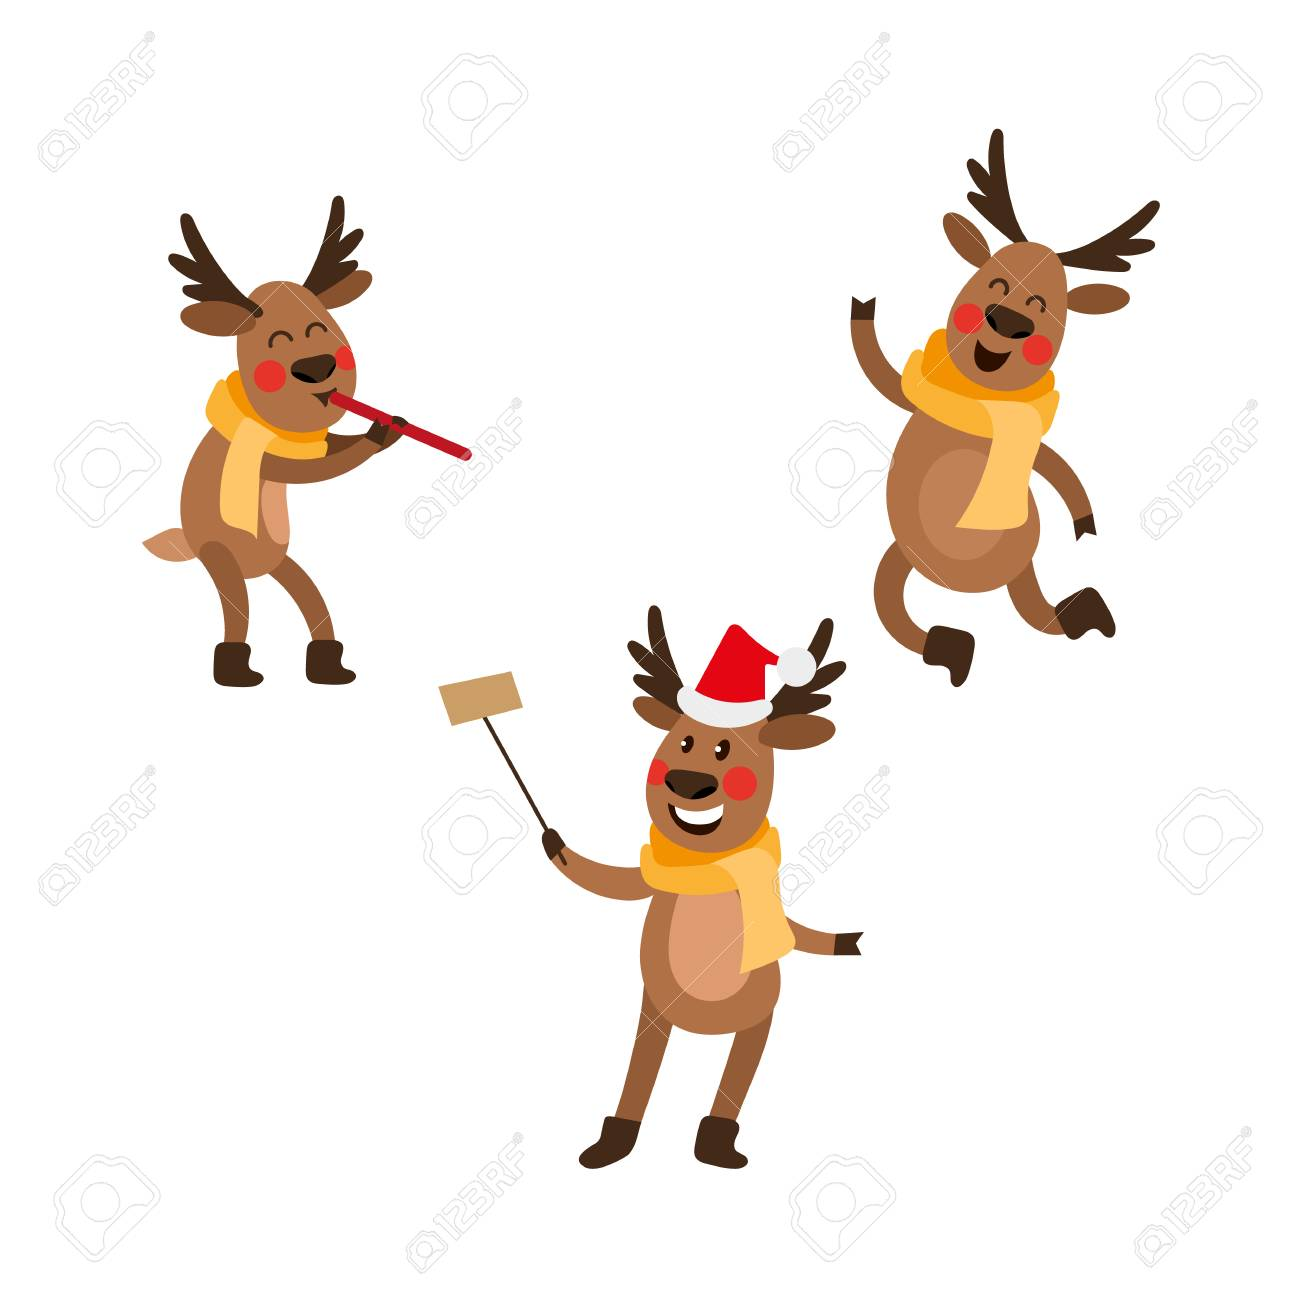 vector flat male christmas reindeer in scarf jumping dancing rh 123rf com Olaf Clip Art Clip Art Hats Scarves Mittens